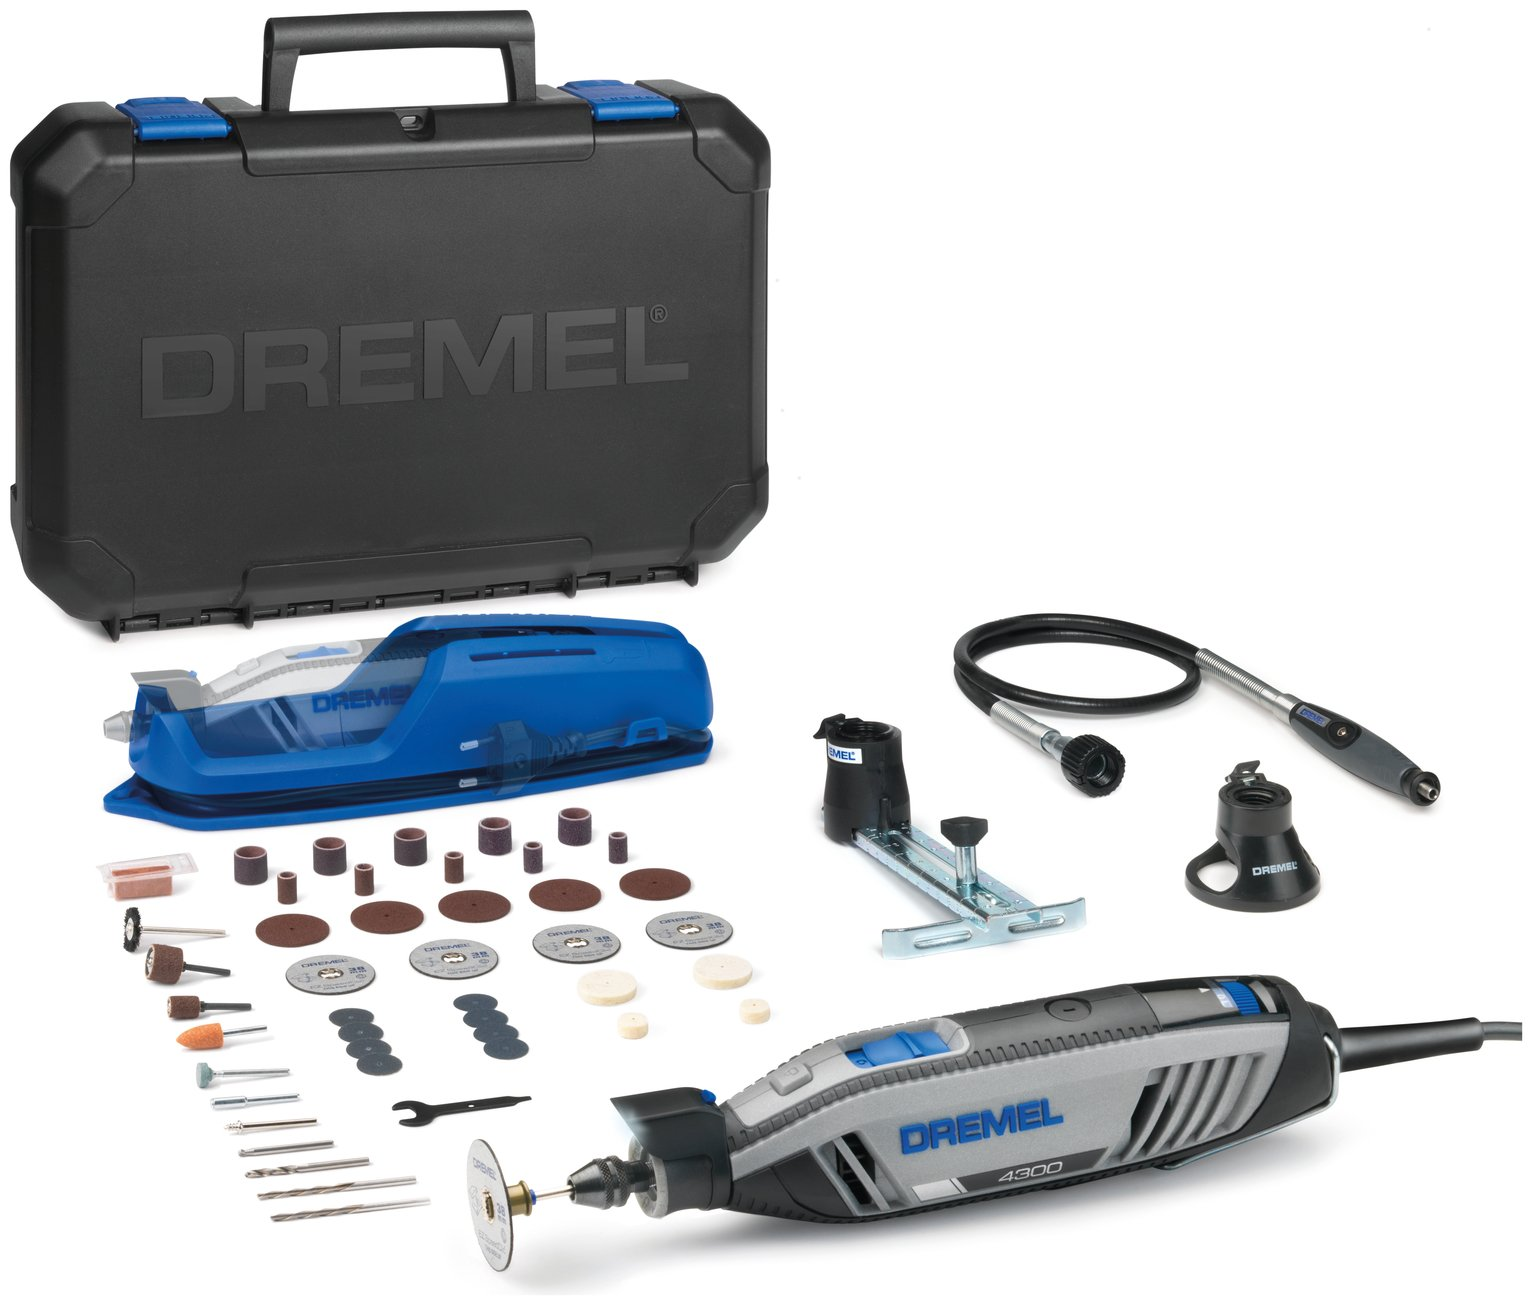 Dremel 4300-3/45 Multi-Tool Kit with EZ Wrap and Case